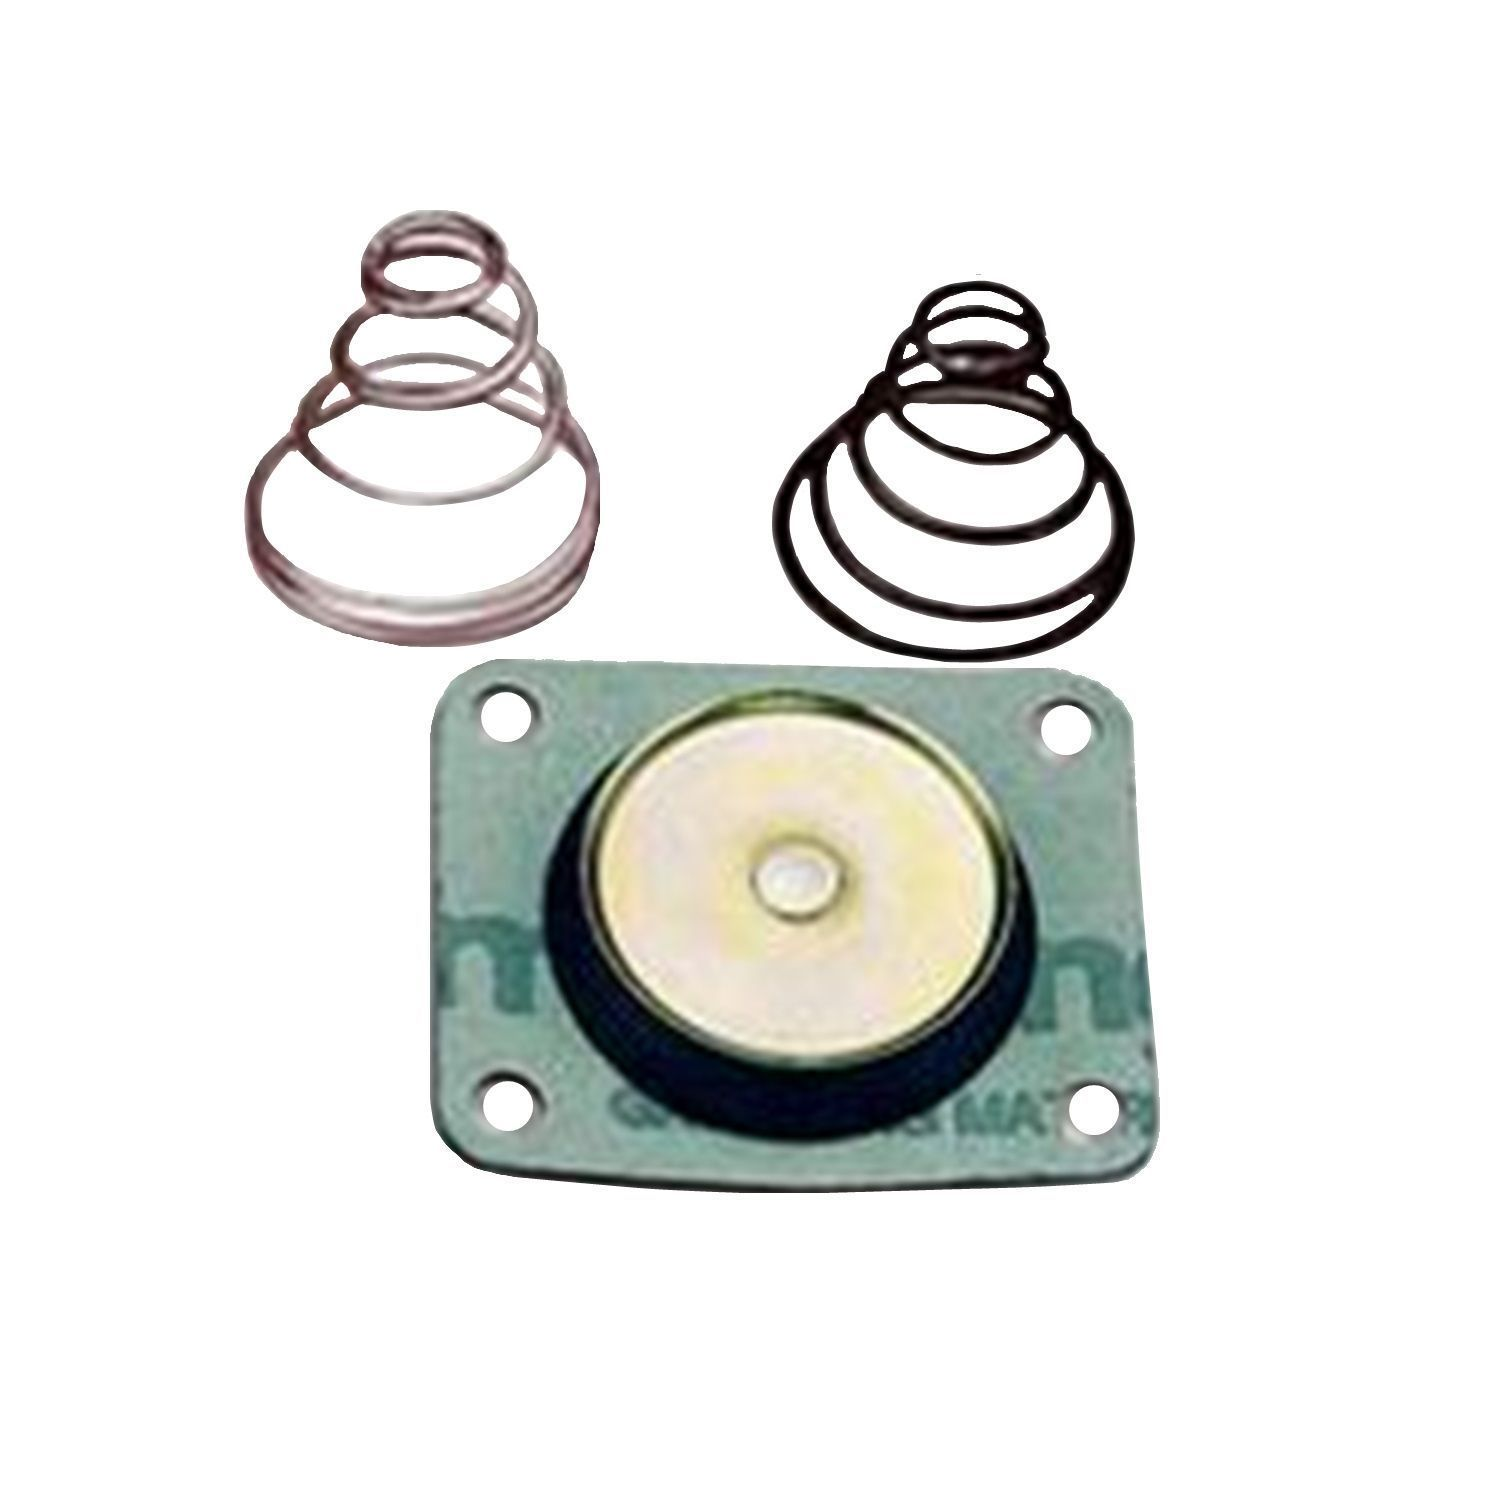 Holley 12 807 fuel pump electric repair kits at atkhp our ccuart Choice Image